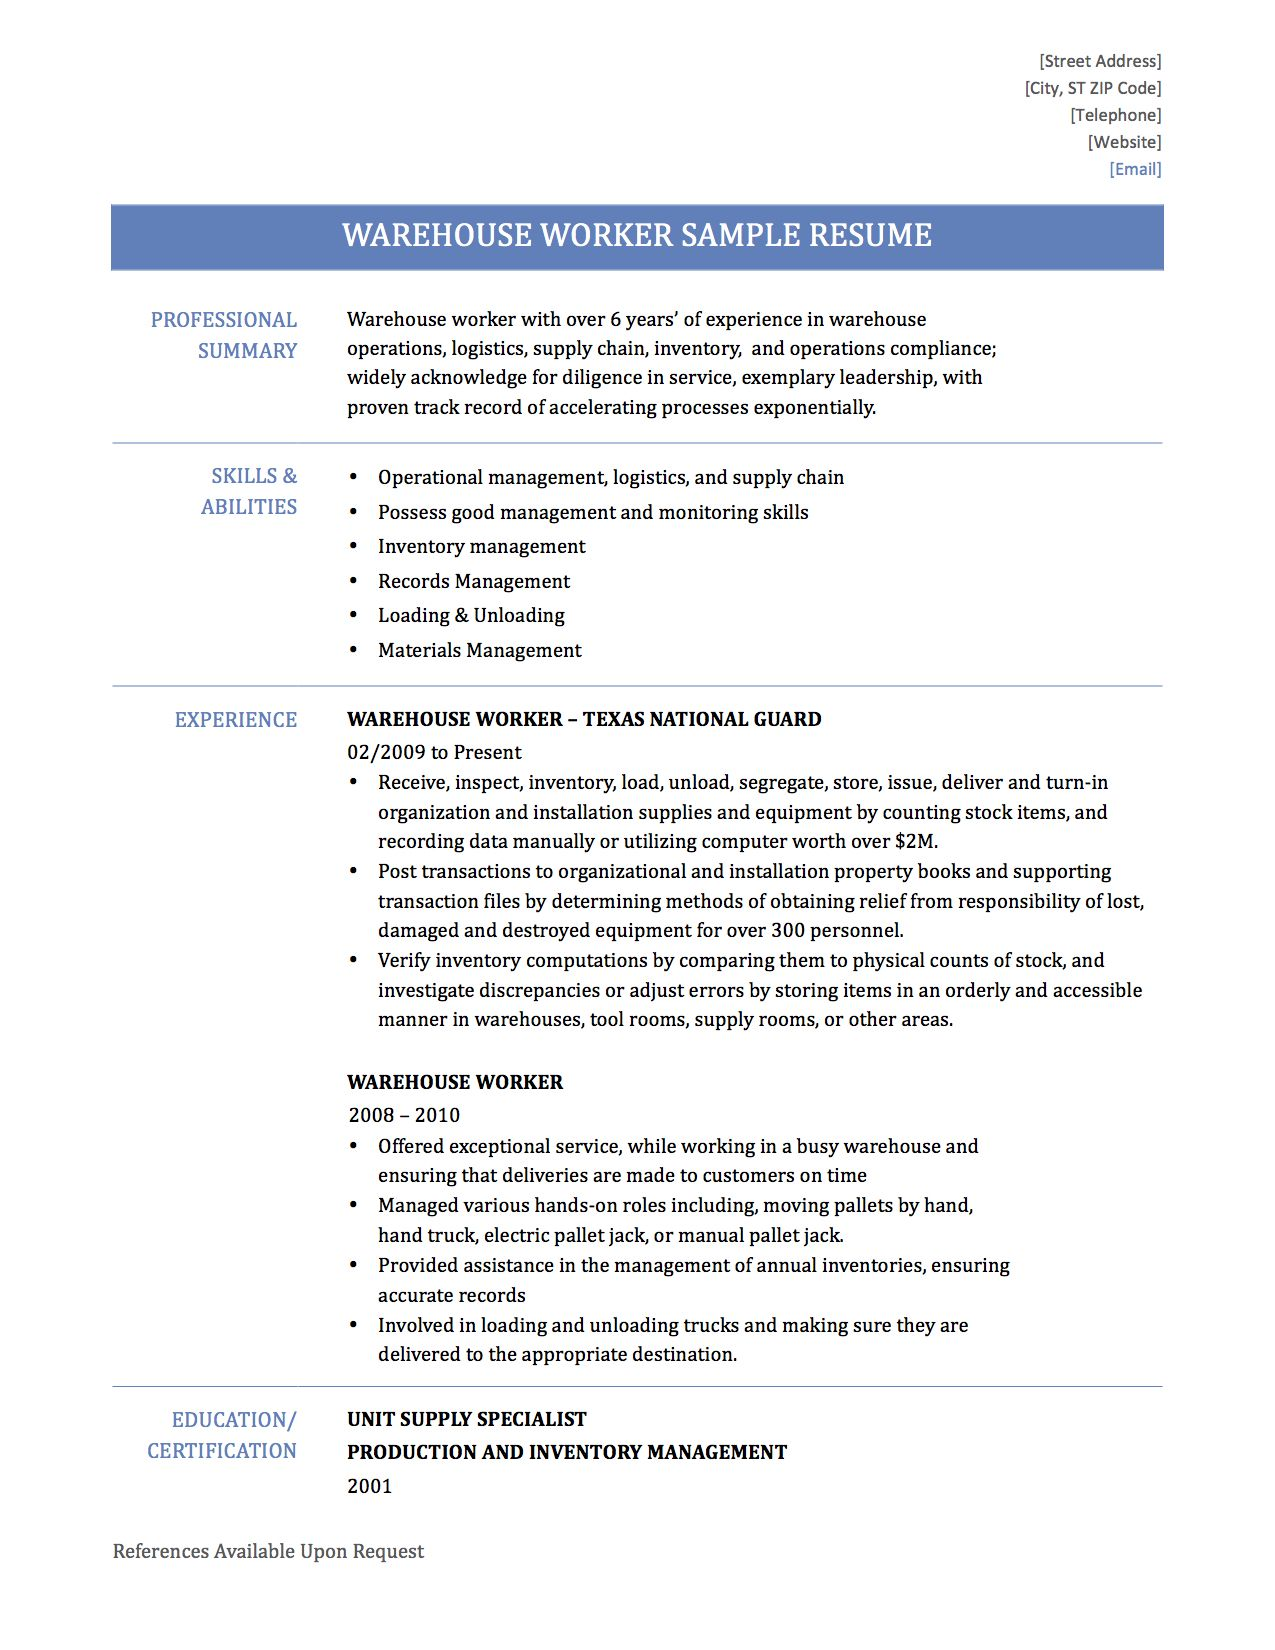 Unit Supply Specialist Resume Resume : Best Job Resume Templates Skills To  List On A Resume .